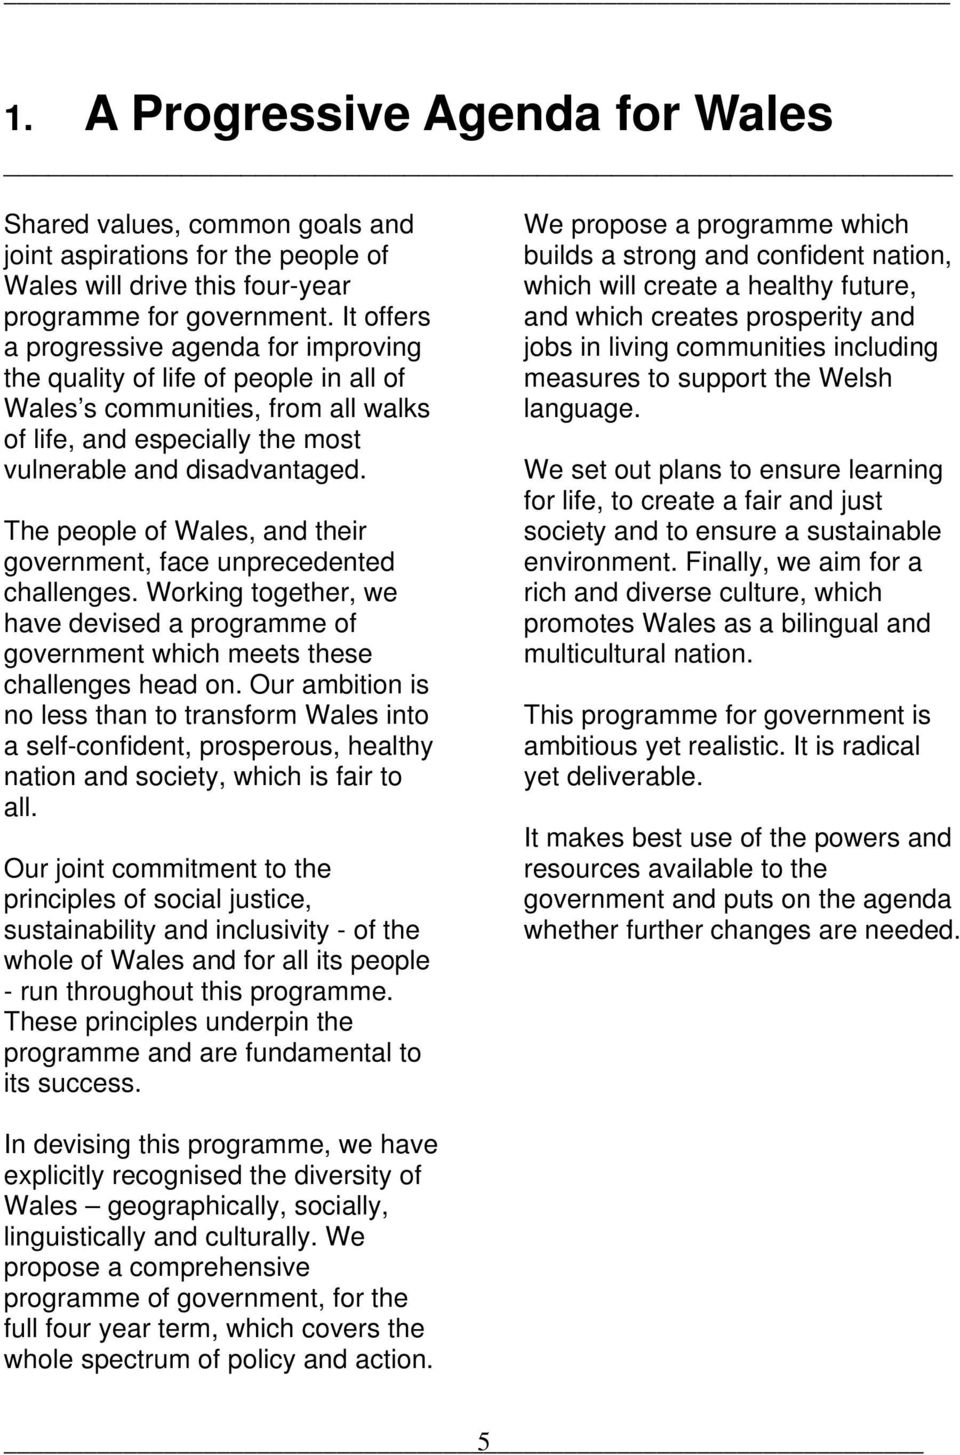 The people of Wales, and their government, face unprecedented challenges. Working together, we have devised a programme of government which meets these challenges head on.